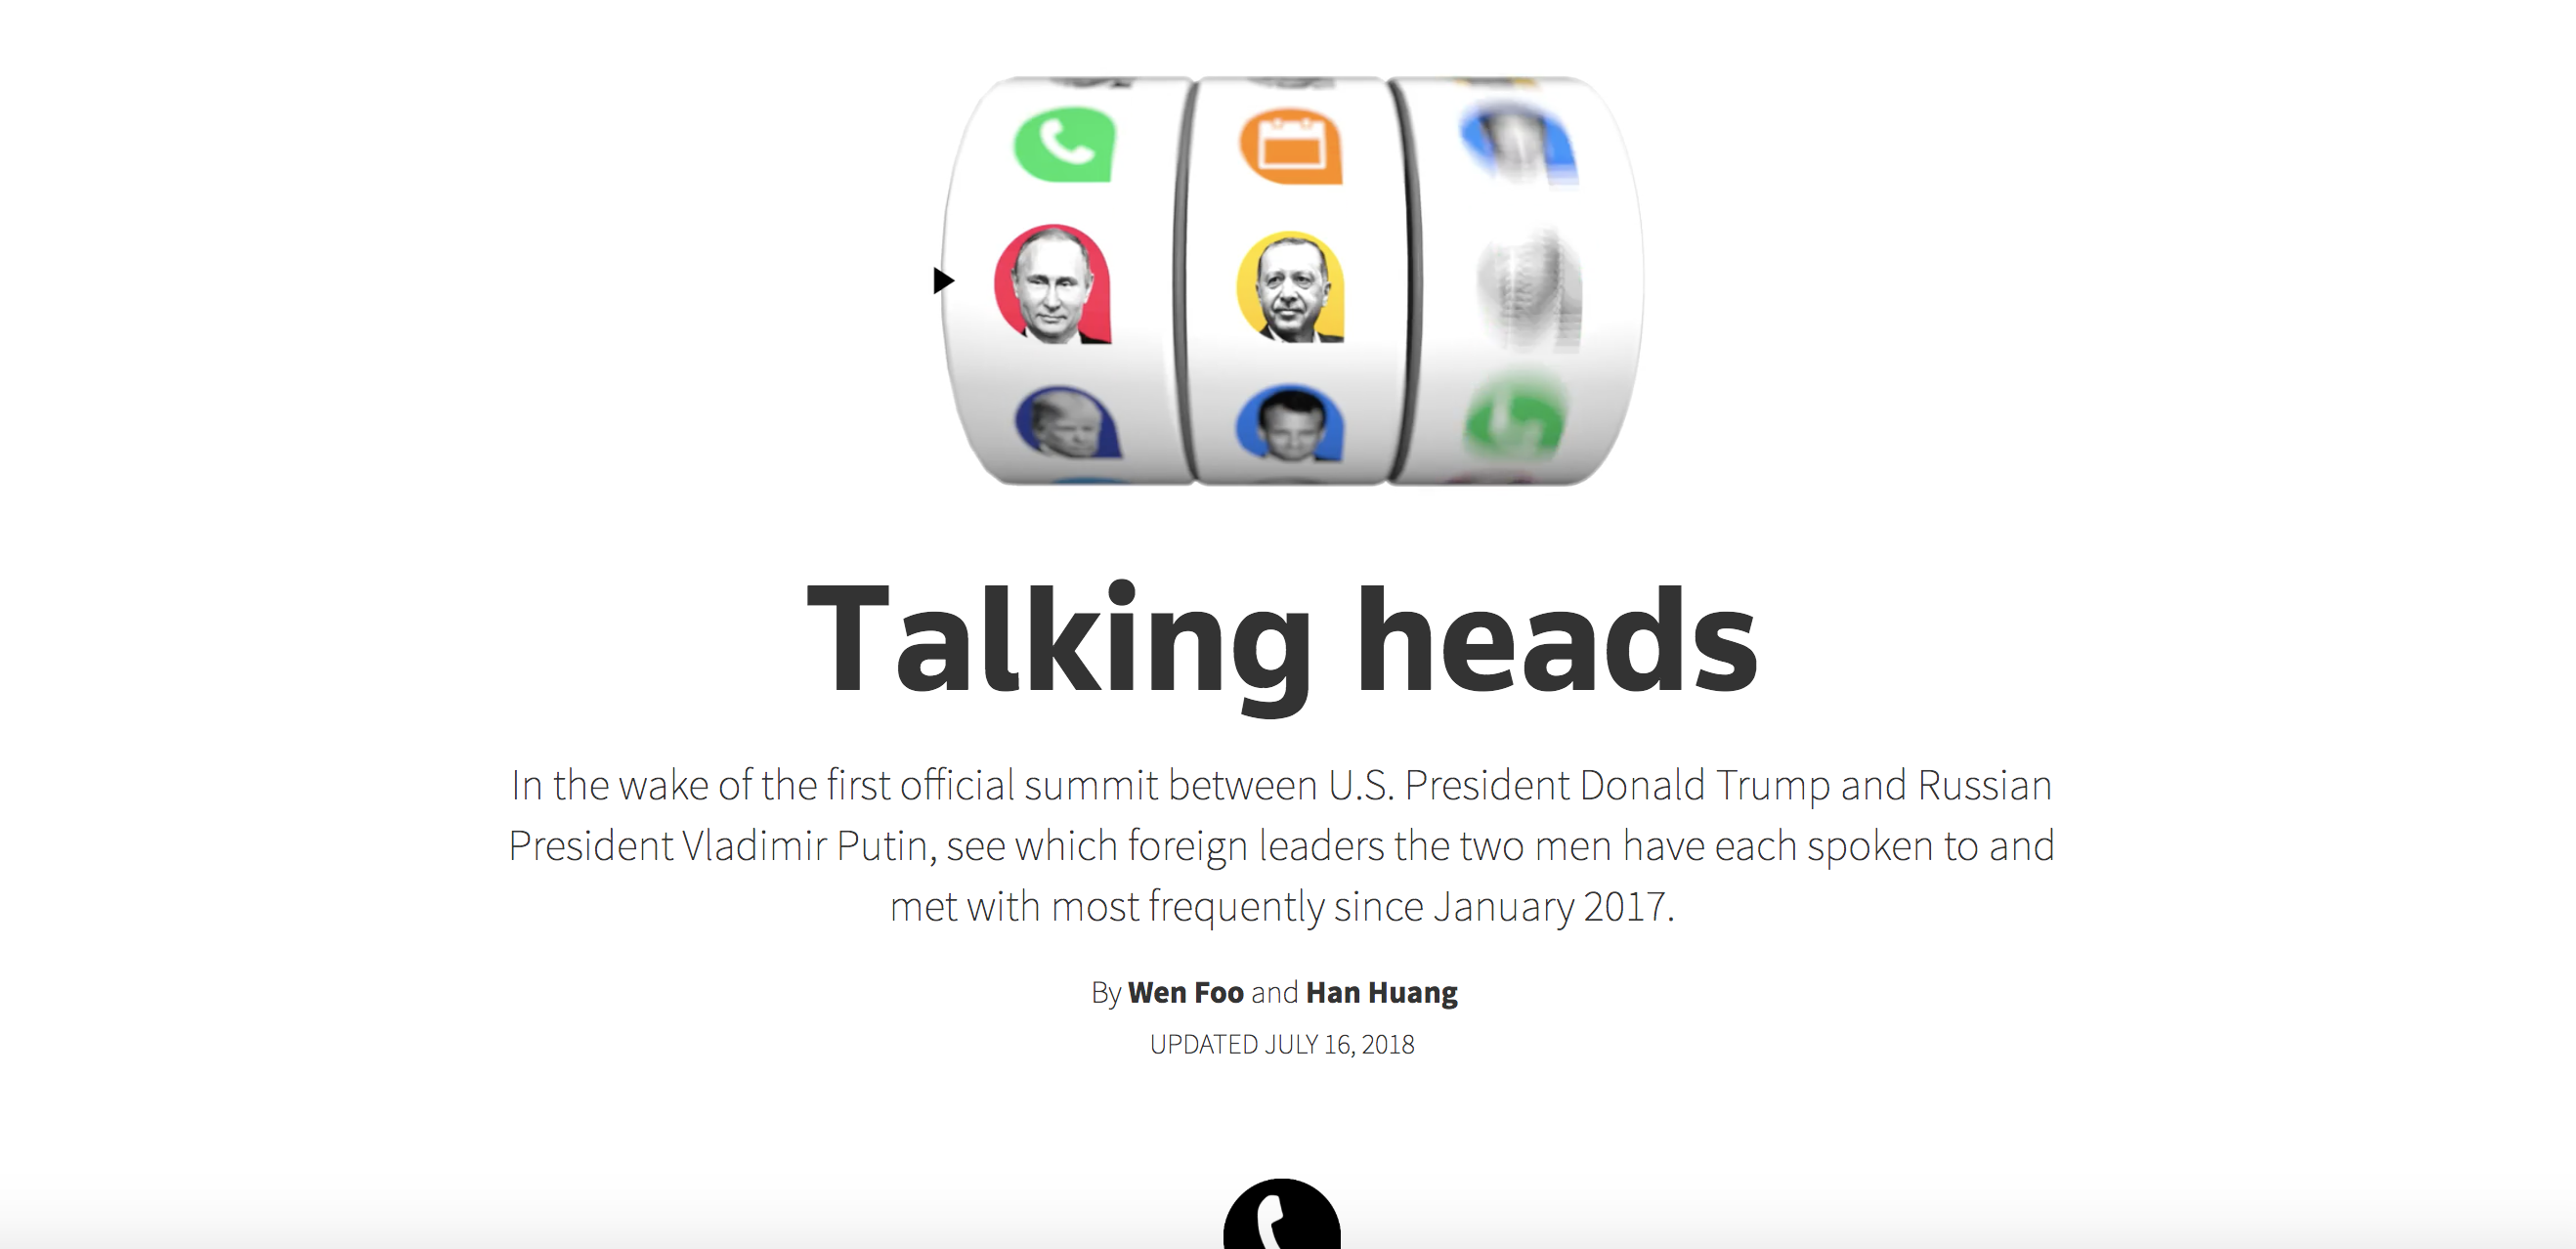 Talking heads by reuters graphics